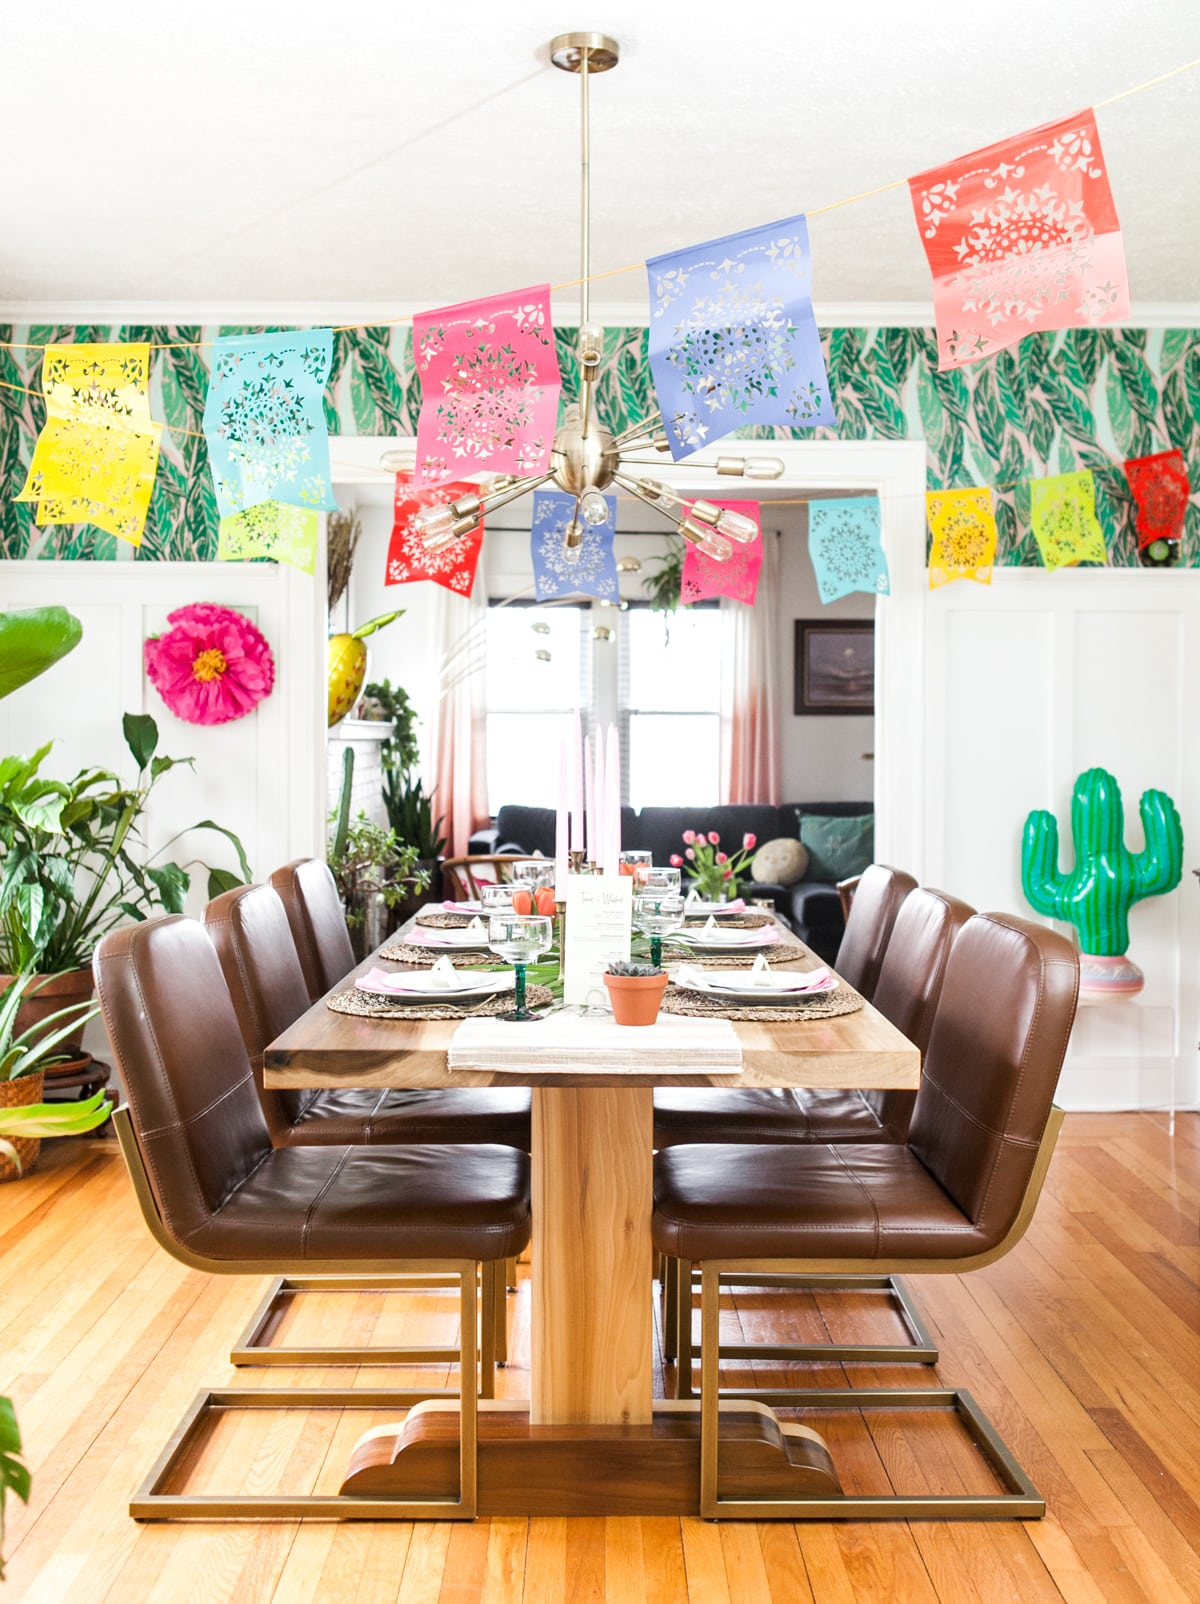 Fiesta Time! Cinco de Mayo Dinner Party | Papel Picado Decor | Party Themes | Birthday Party Ideas | Jessica Brigham Magazine Ready for Life